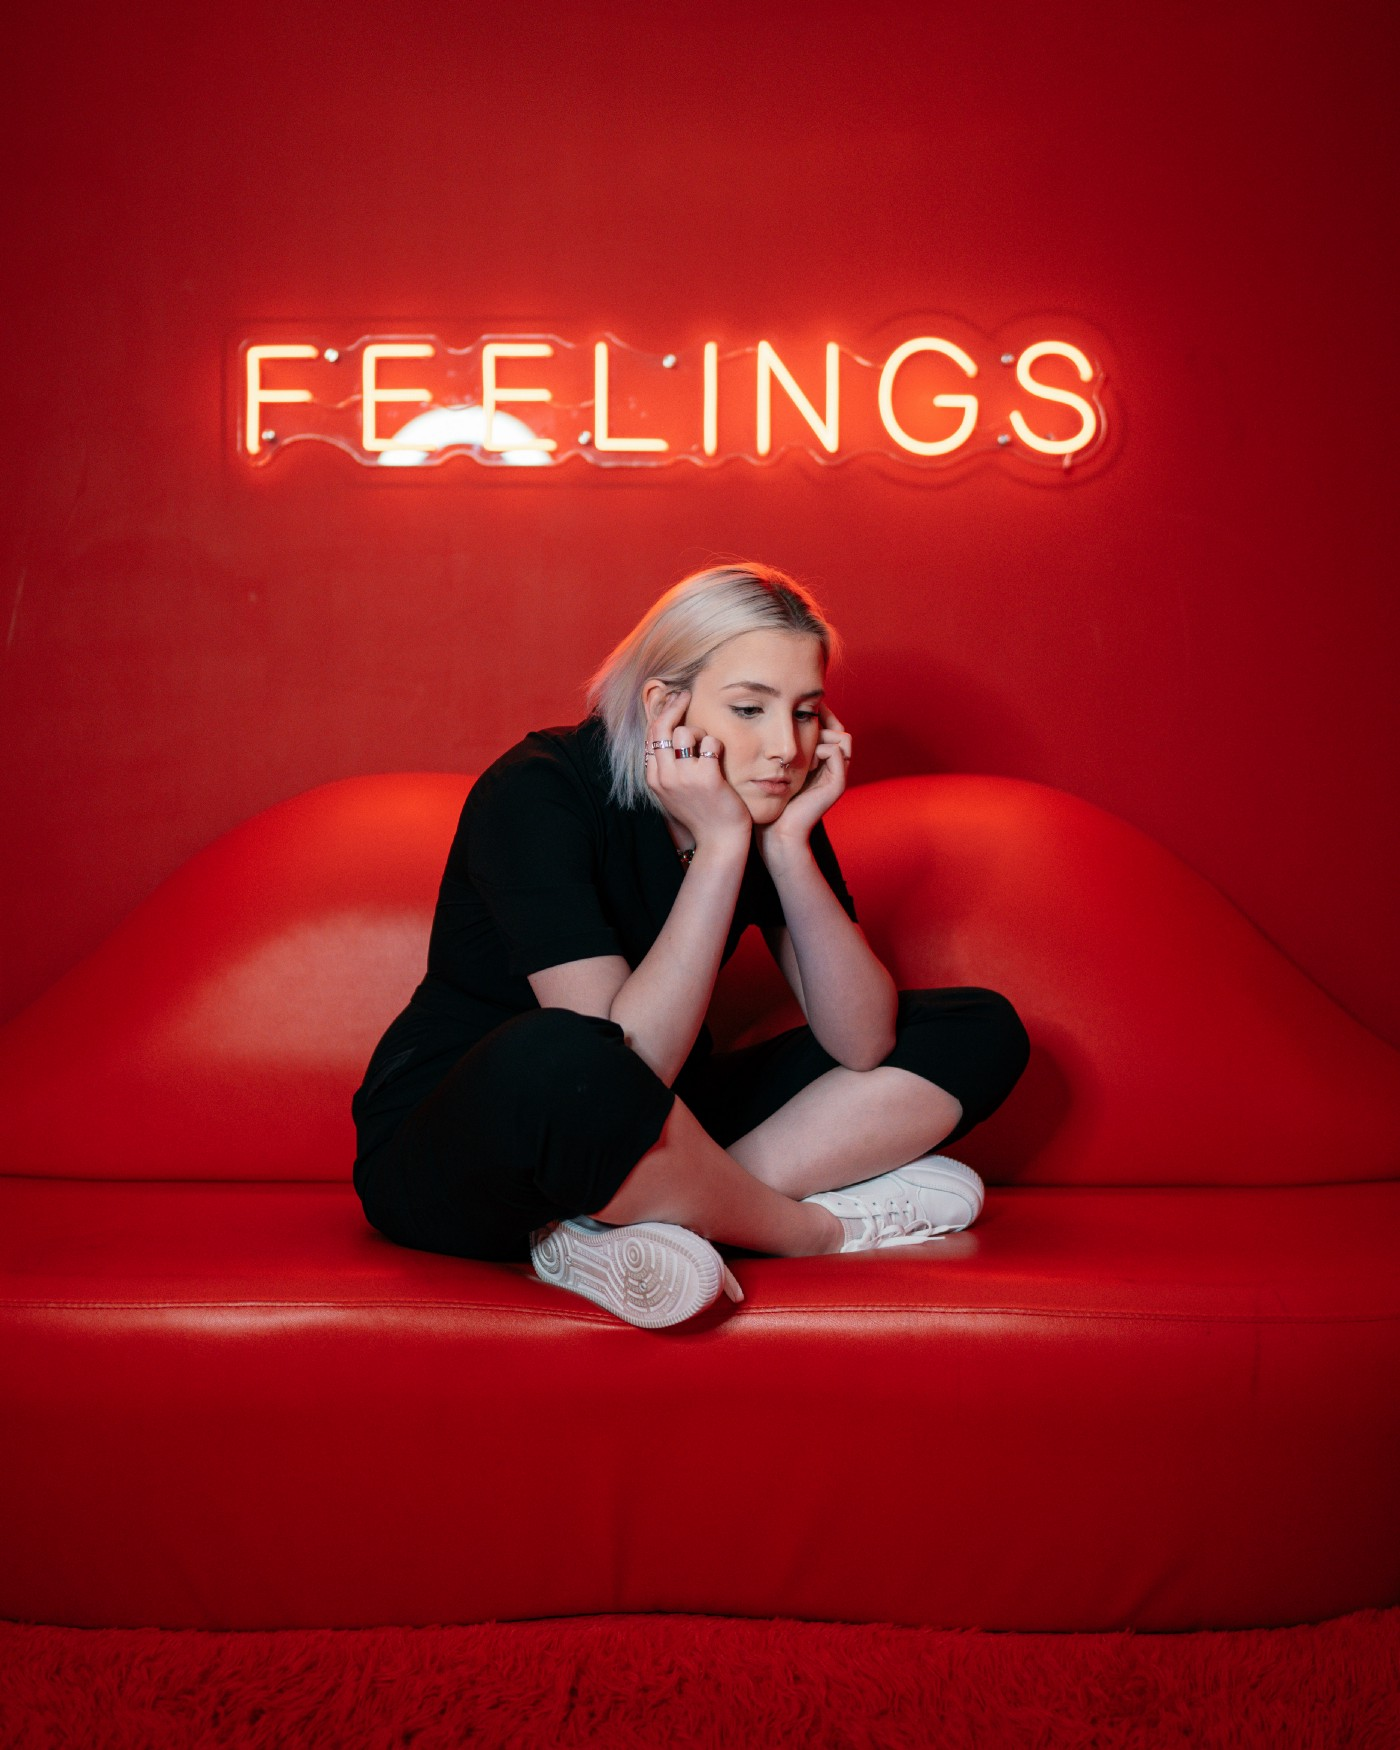 """A woman sits, thinking, on a red couch which is shaped like a pair of lips. There is a neon sign behind her which says """"feelings."""""""